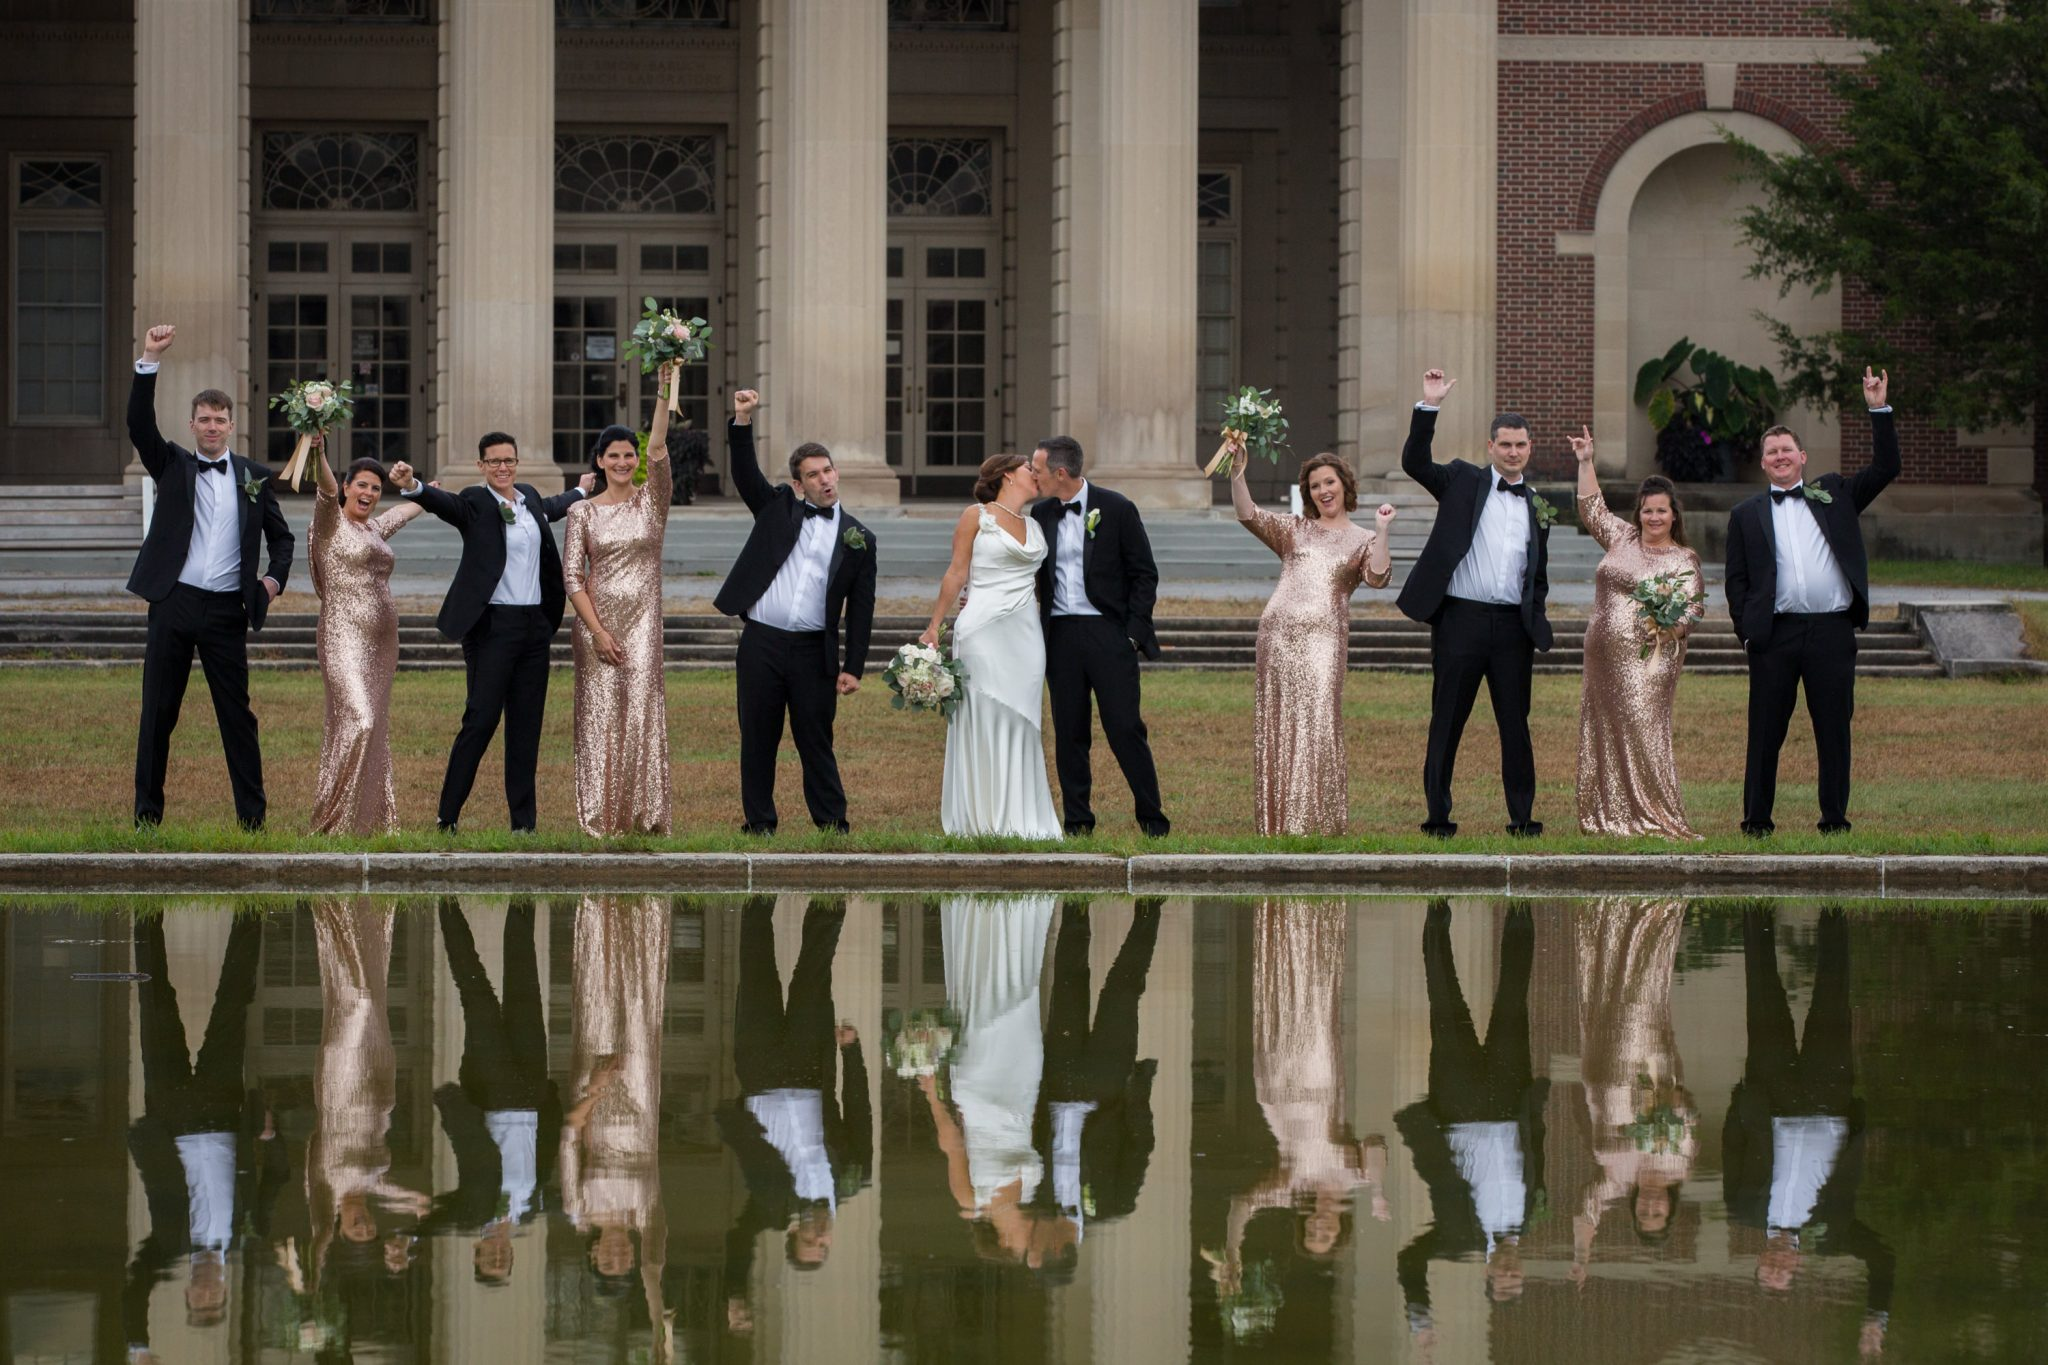 wedding party portrait fun with reflection on water and architectural brick by Vermont wedding photographers